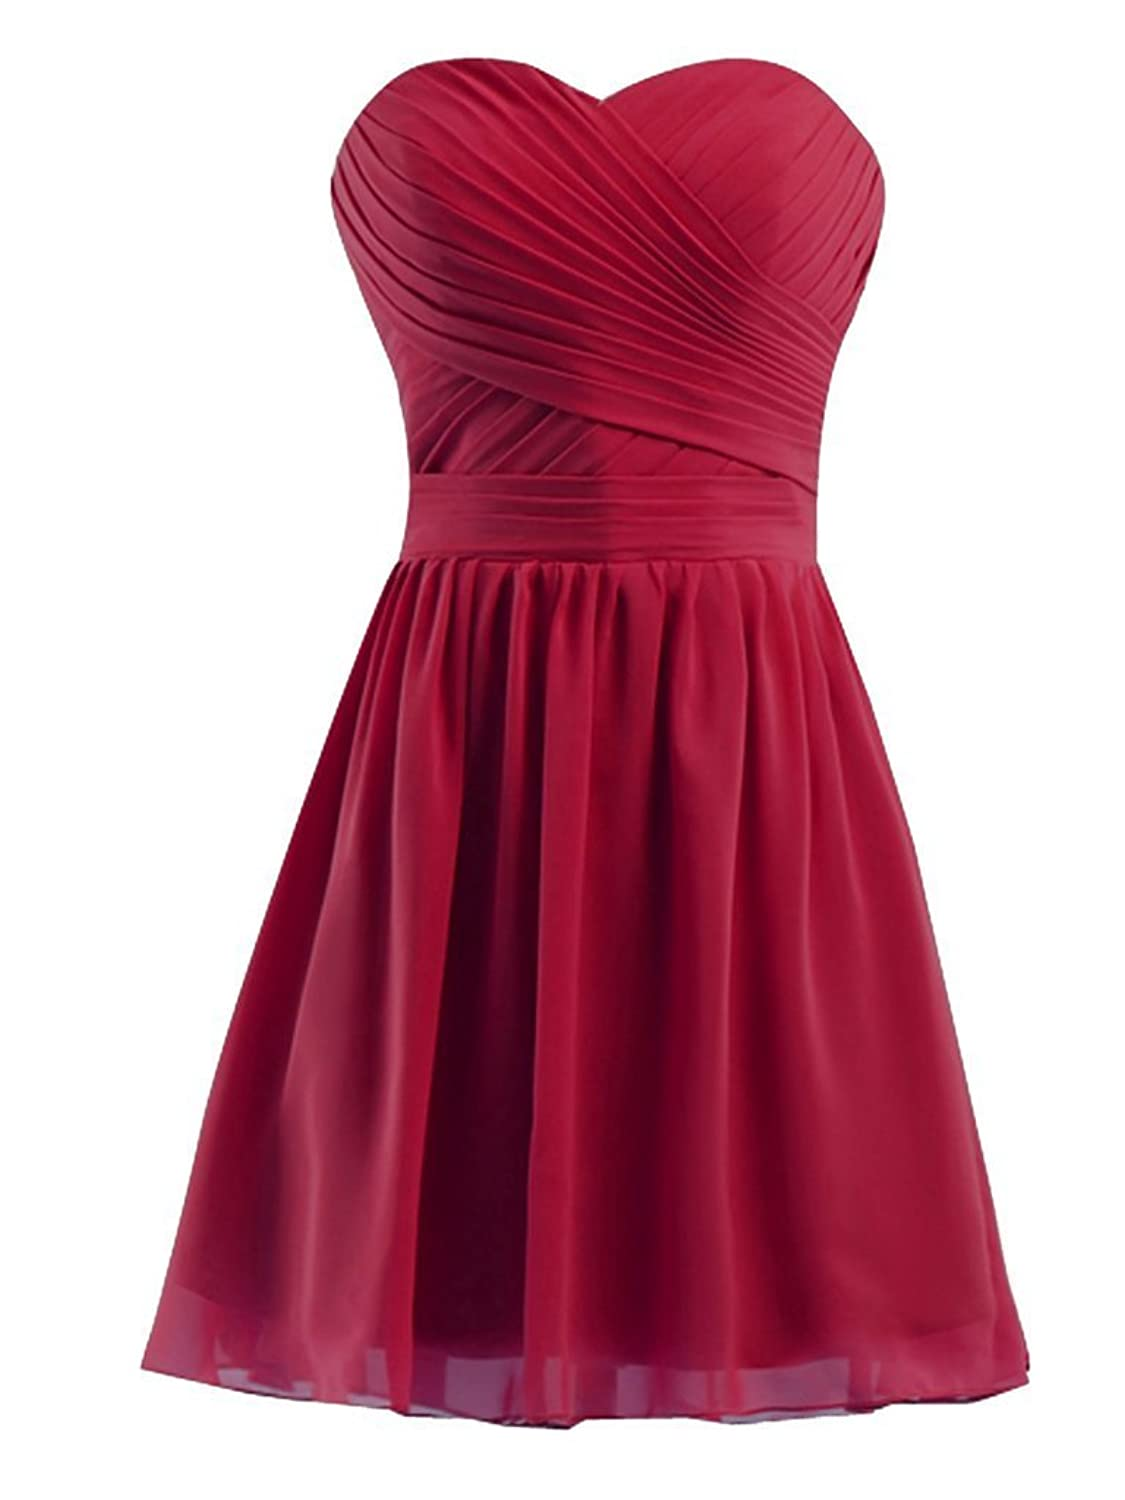 CARADRESS Short Sweetheart Knee Length Chiffon Homecoming Gowns Prom Dresses Burgundy